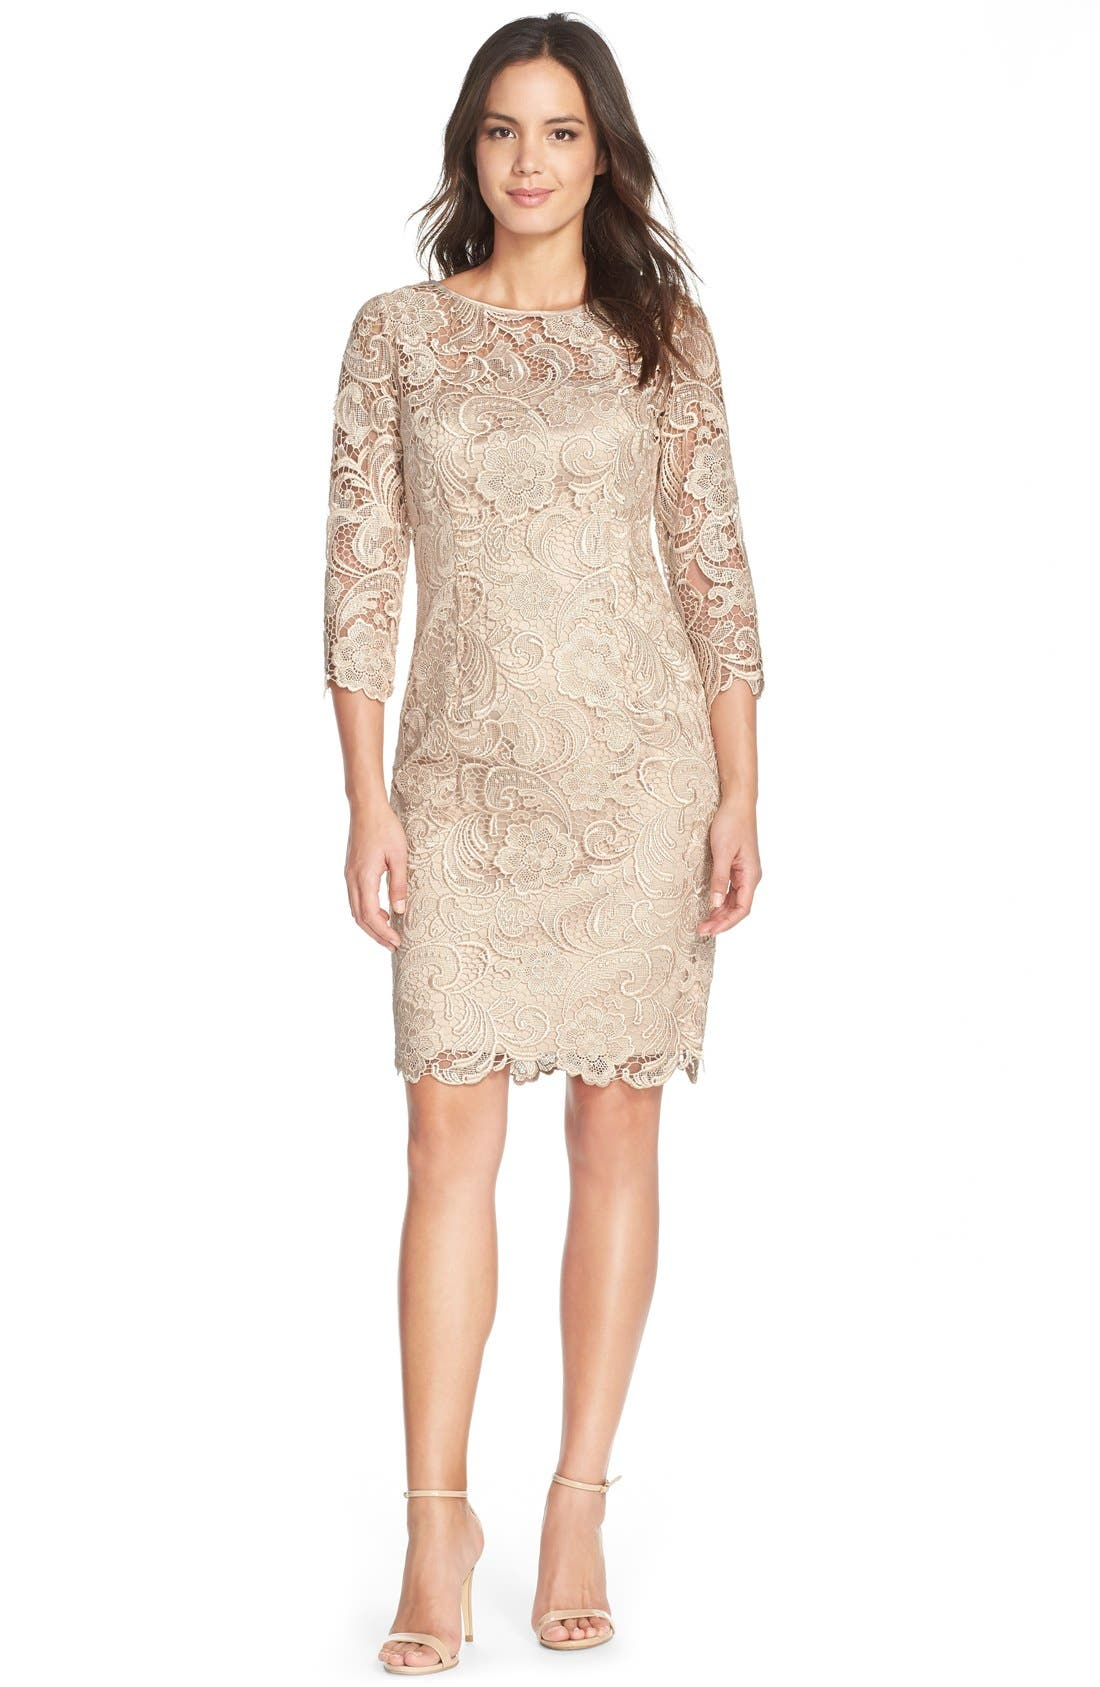 ADRIANNA PAPELL,                             Illusion Yoke Guipure Lace Sheath Dress,                             Alternate thumbnail 3, color,                             250